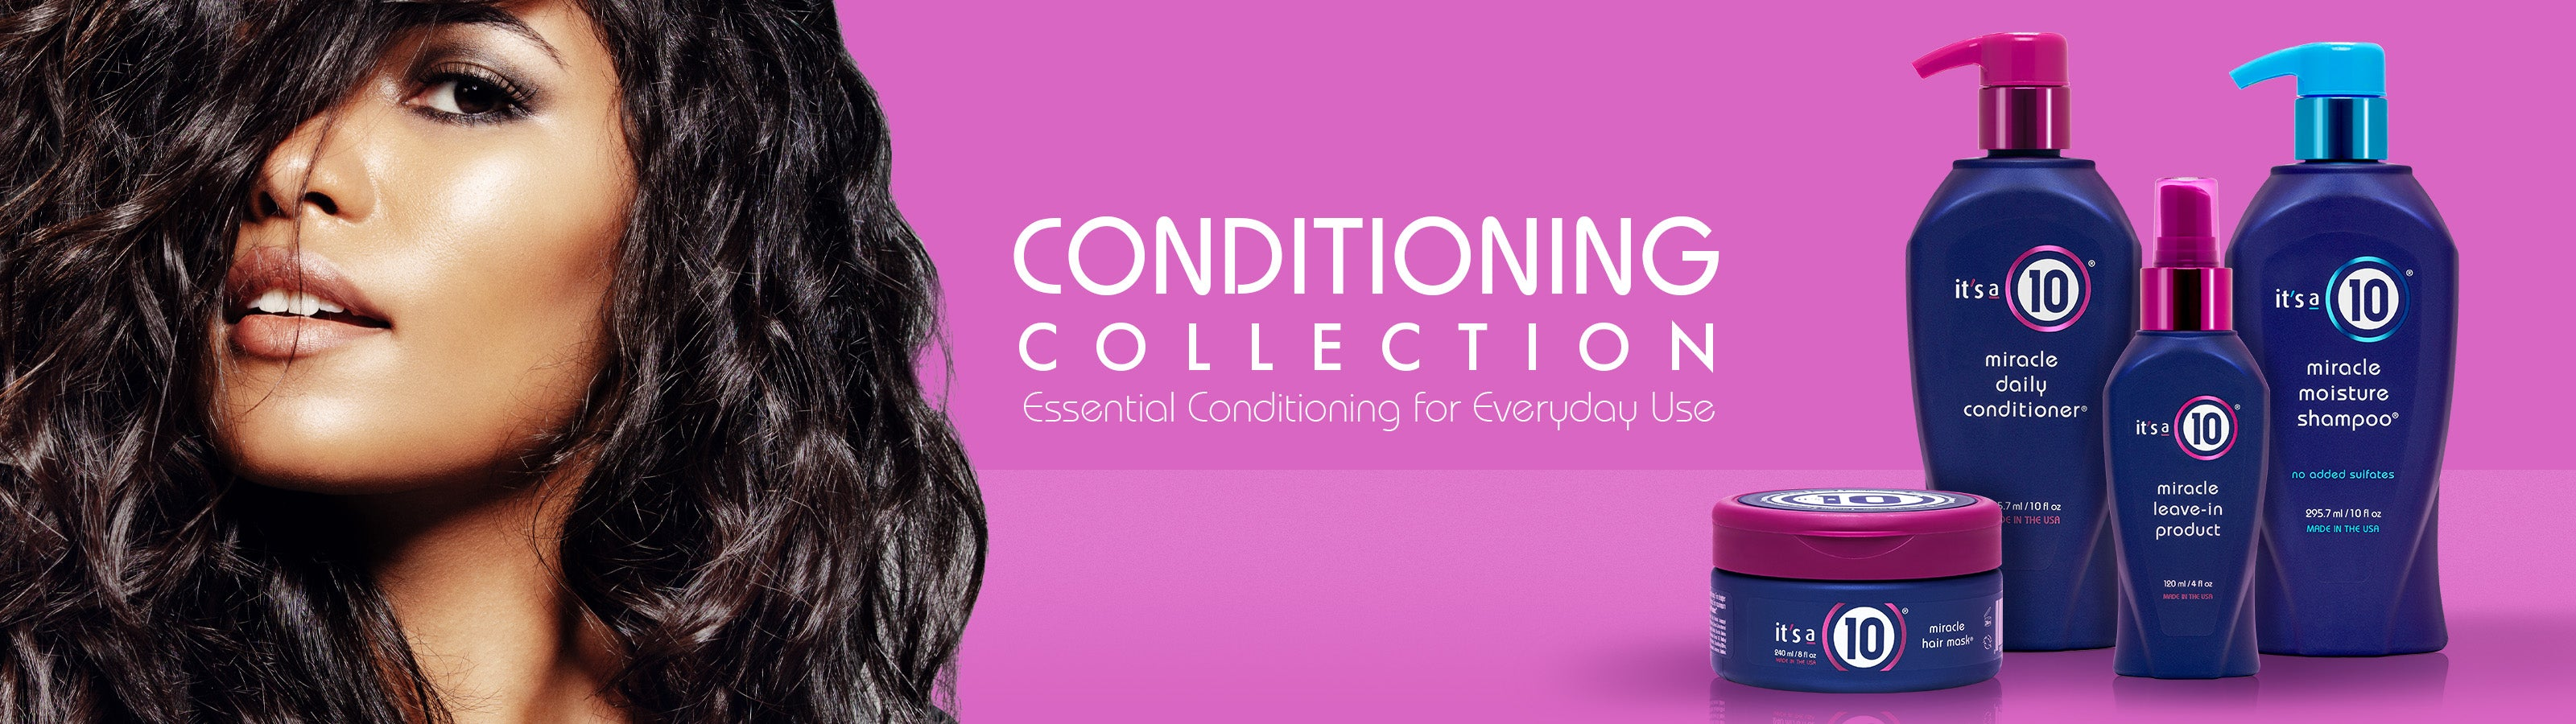 Conditioning Collection